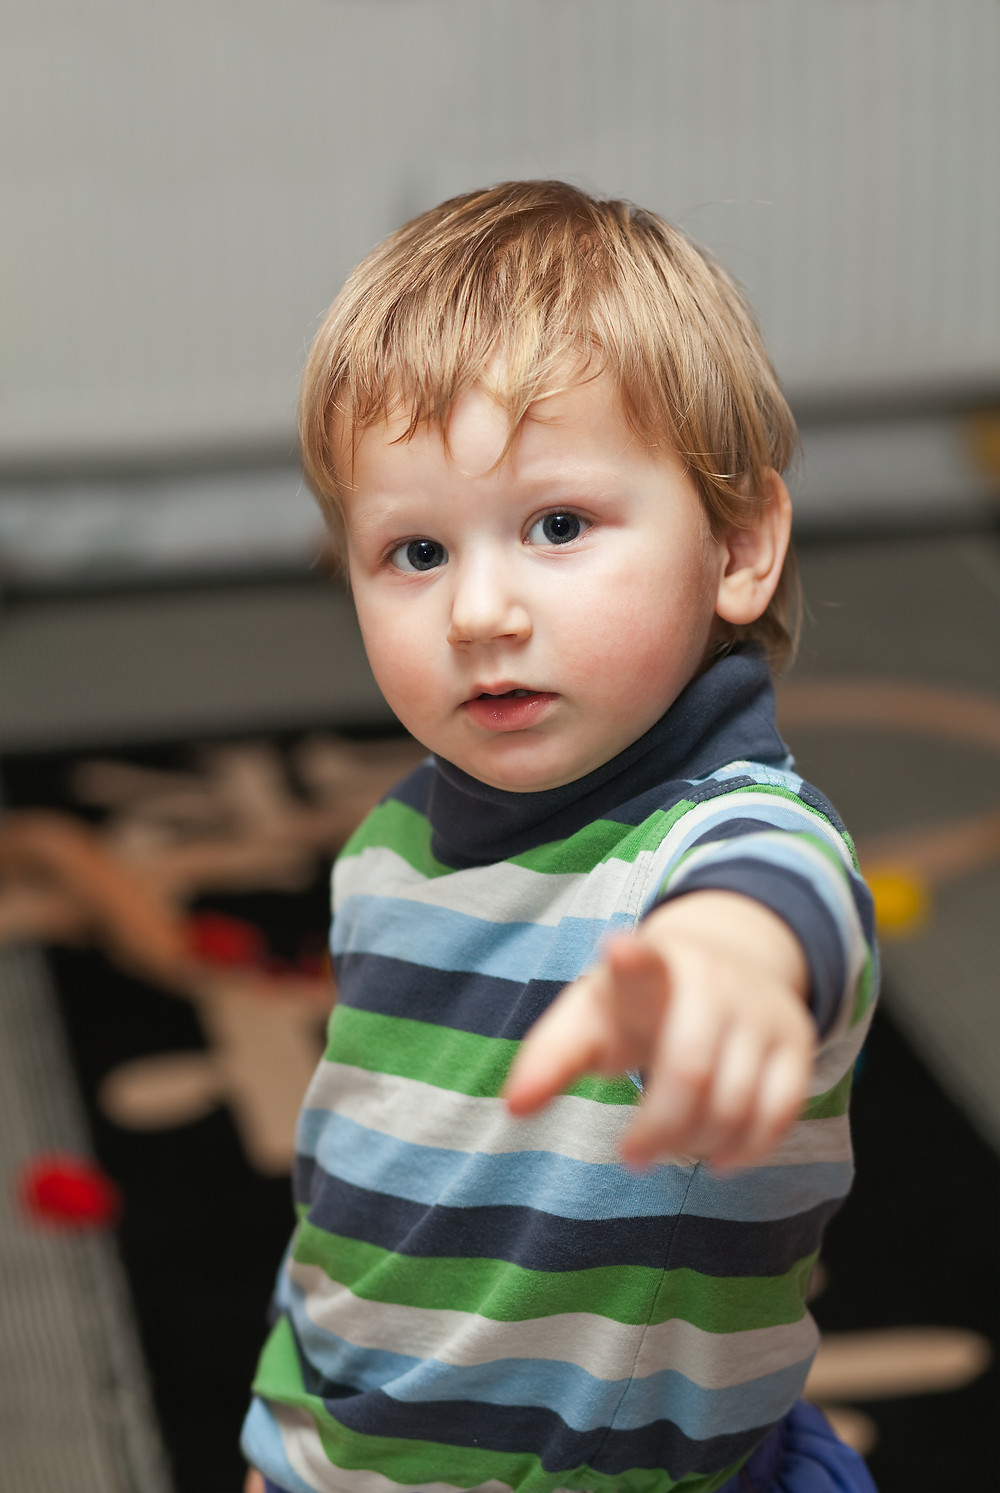 supporting children with speech sound difficulties - encourage pointing and gesturing